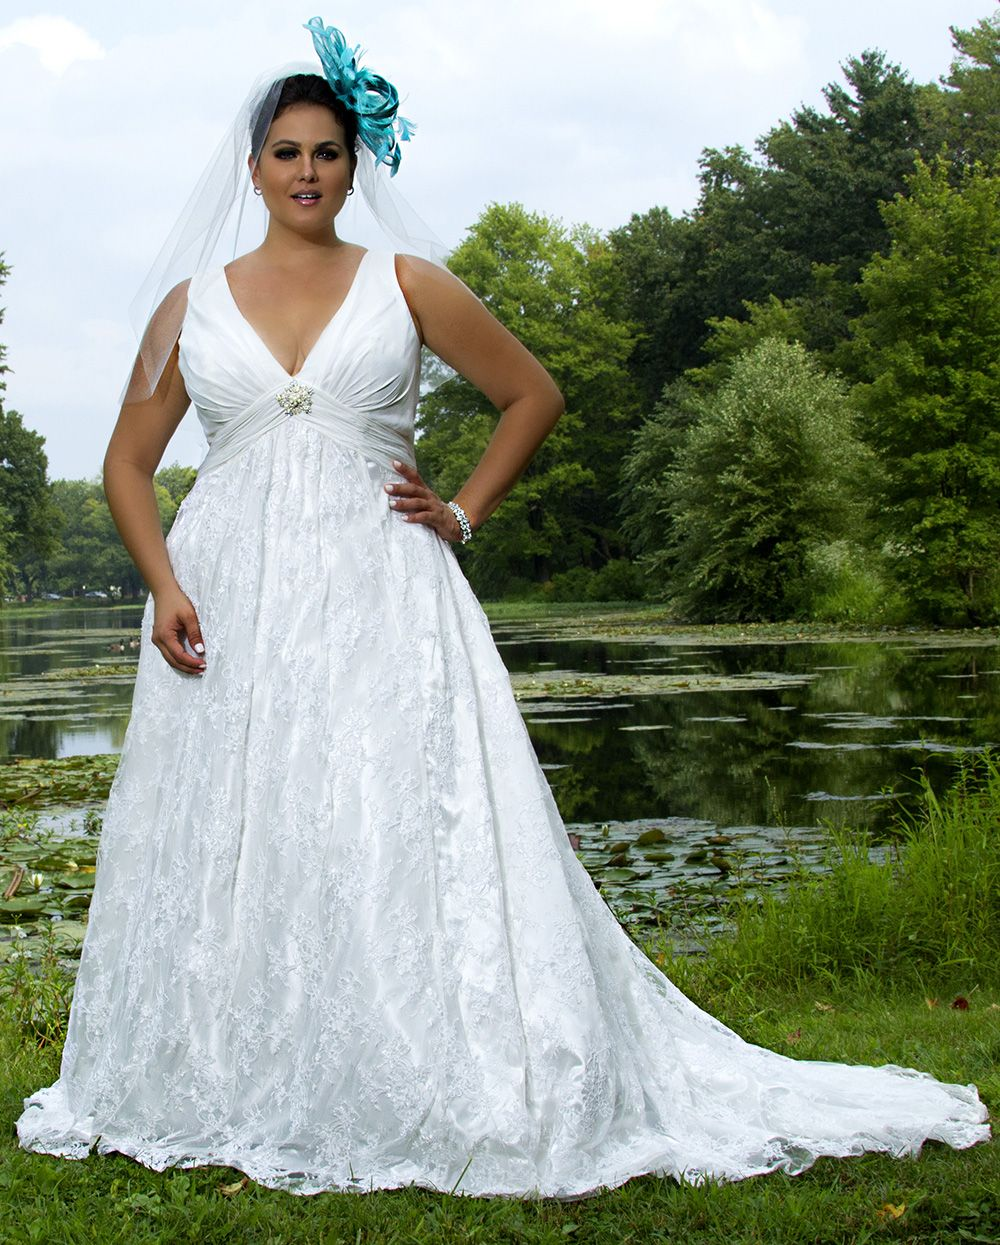 Davids Bridal Plus Size Wedding Dresses: Five Fab Plus Size Destination Wedding Dresses